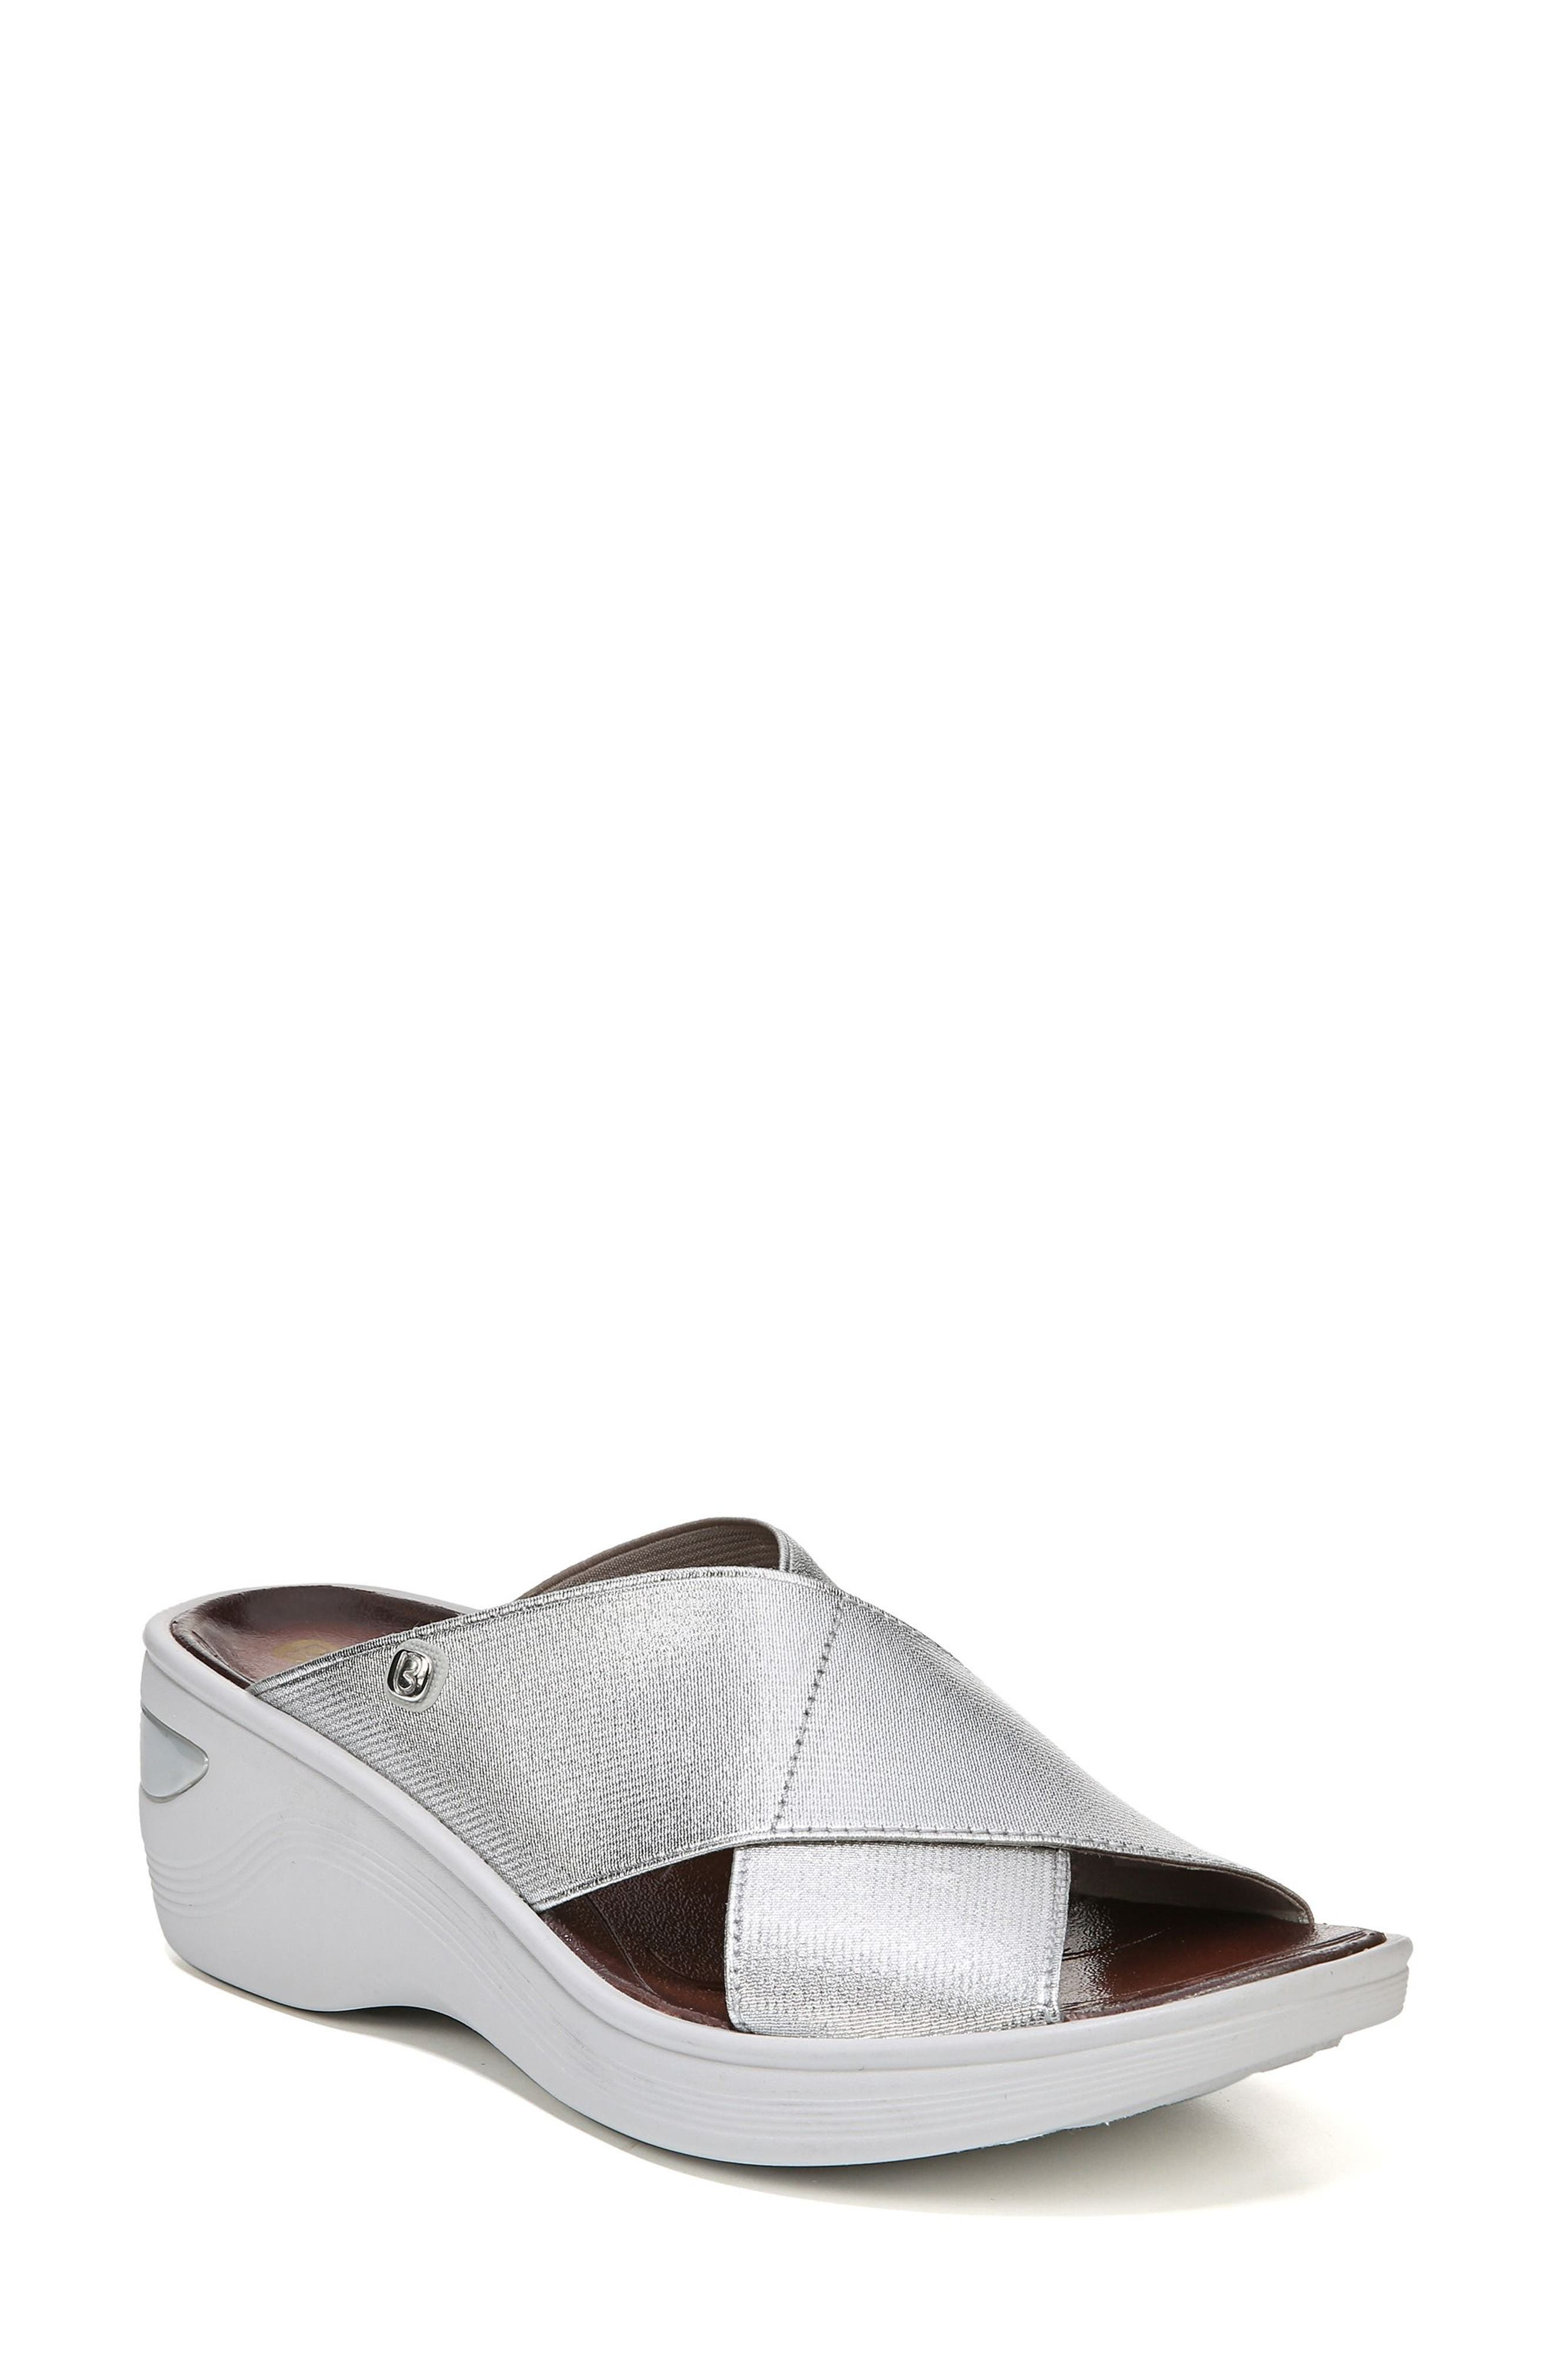 'Desire' Wedge Sandal,                         Main,                         color, SILVER METALLIC